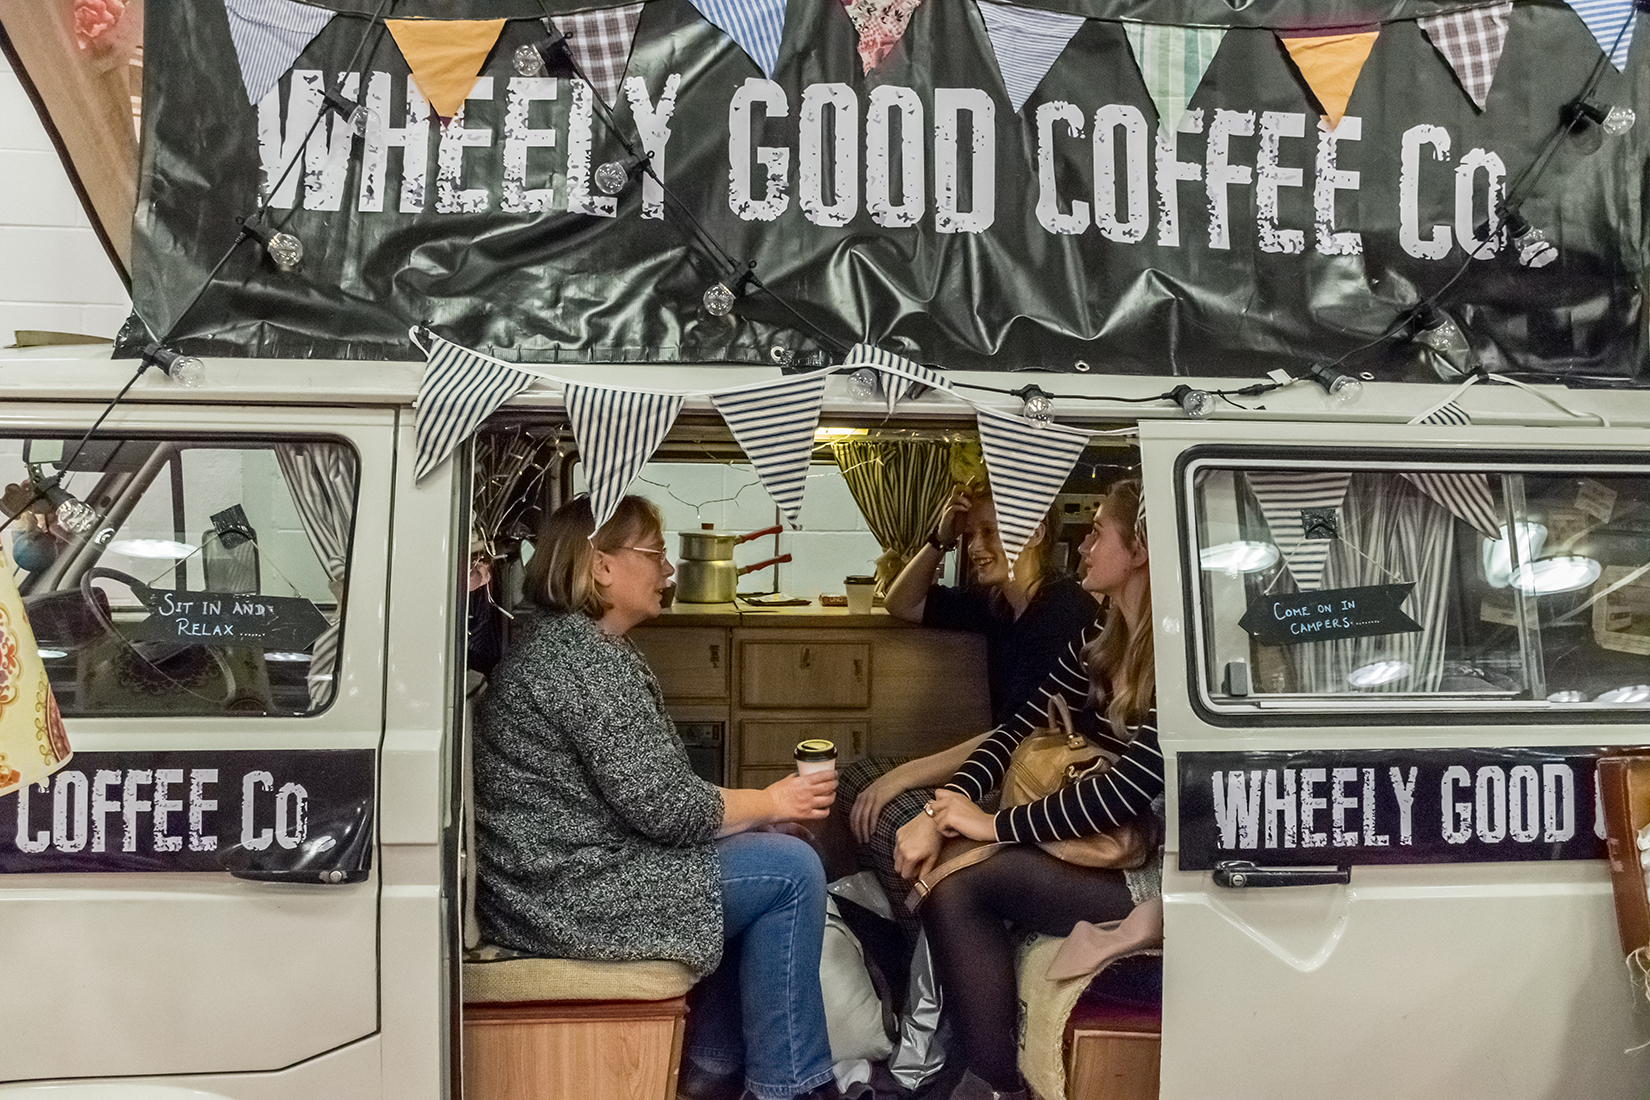 Campers at the Wheely Good Coffee Co